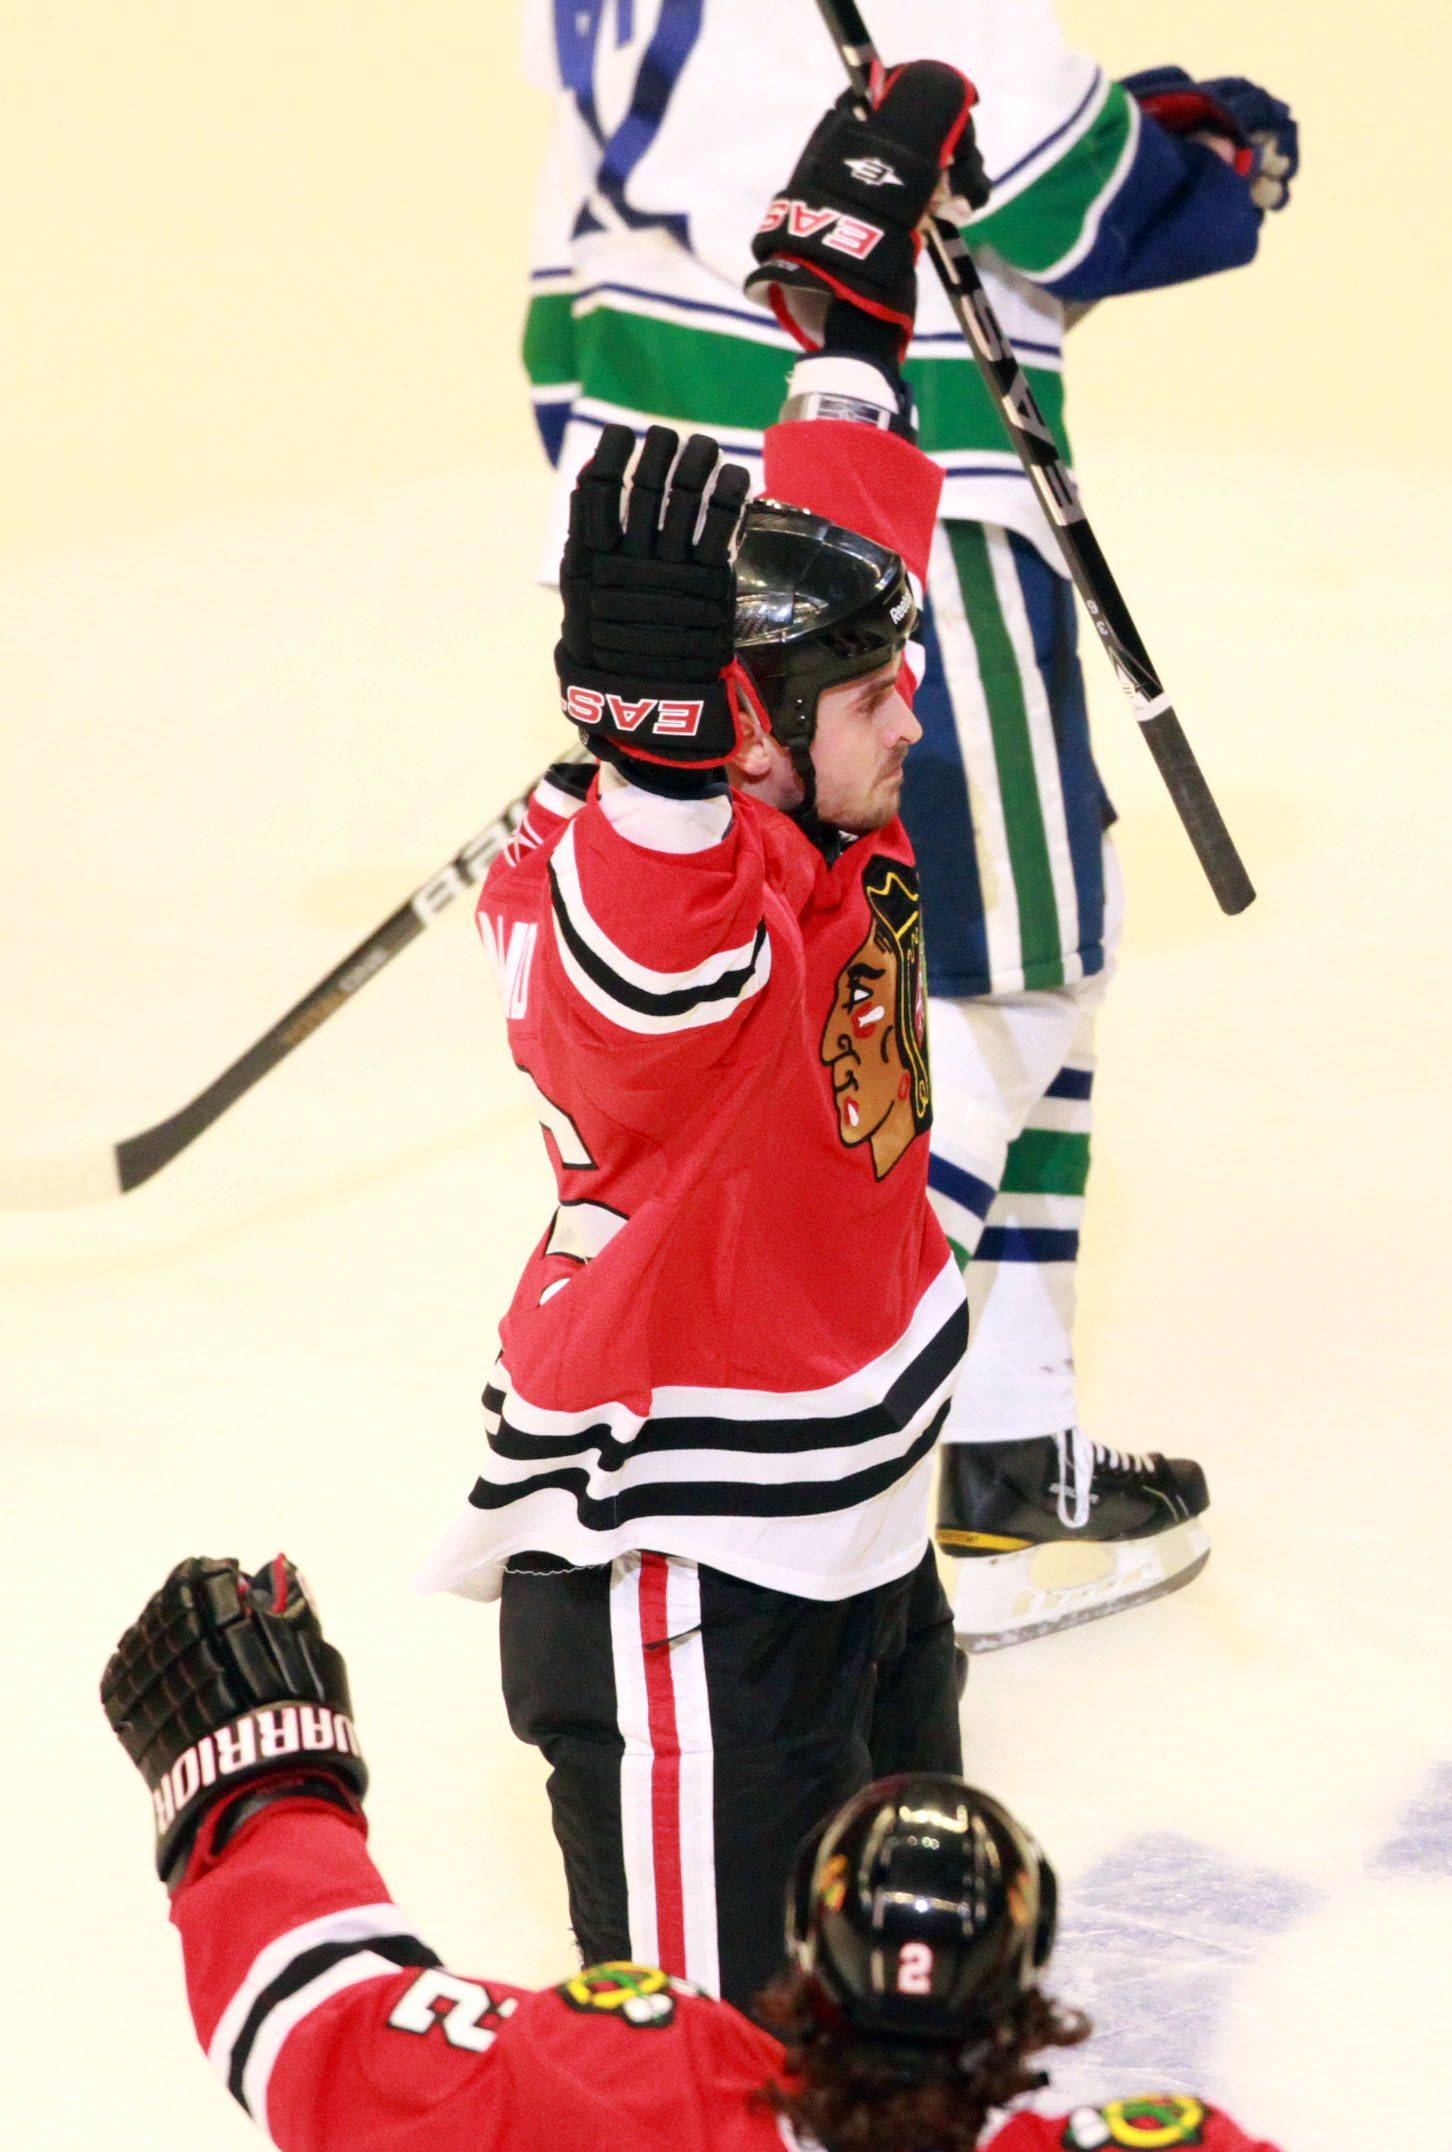 Chicago Blackhawks Michael Frolik celebrates his penalty goal against Vancouver Canucks in game 6 of the Stanley Cup quarterfinals at the United Center in Chicago on Sunday.